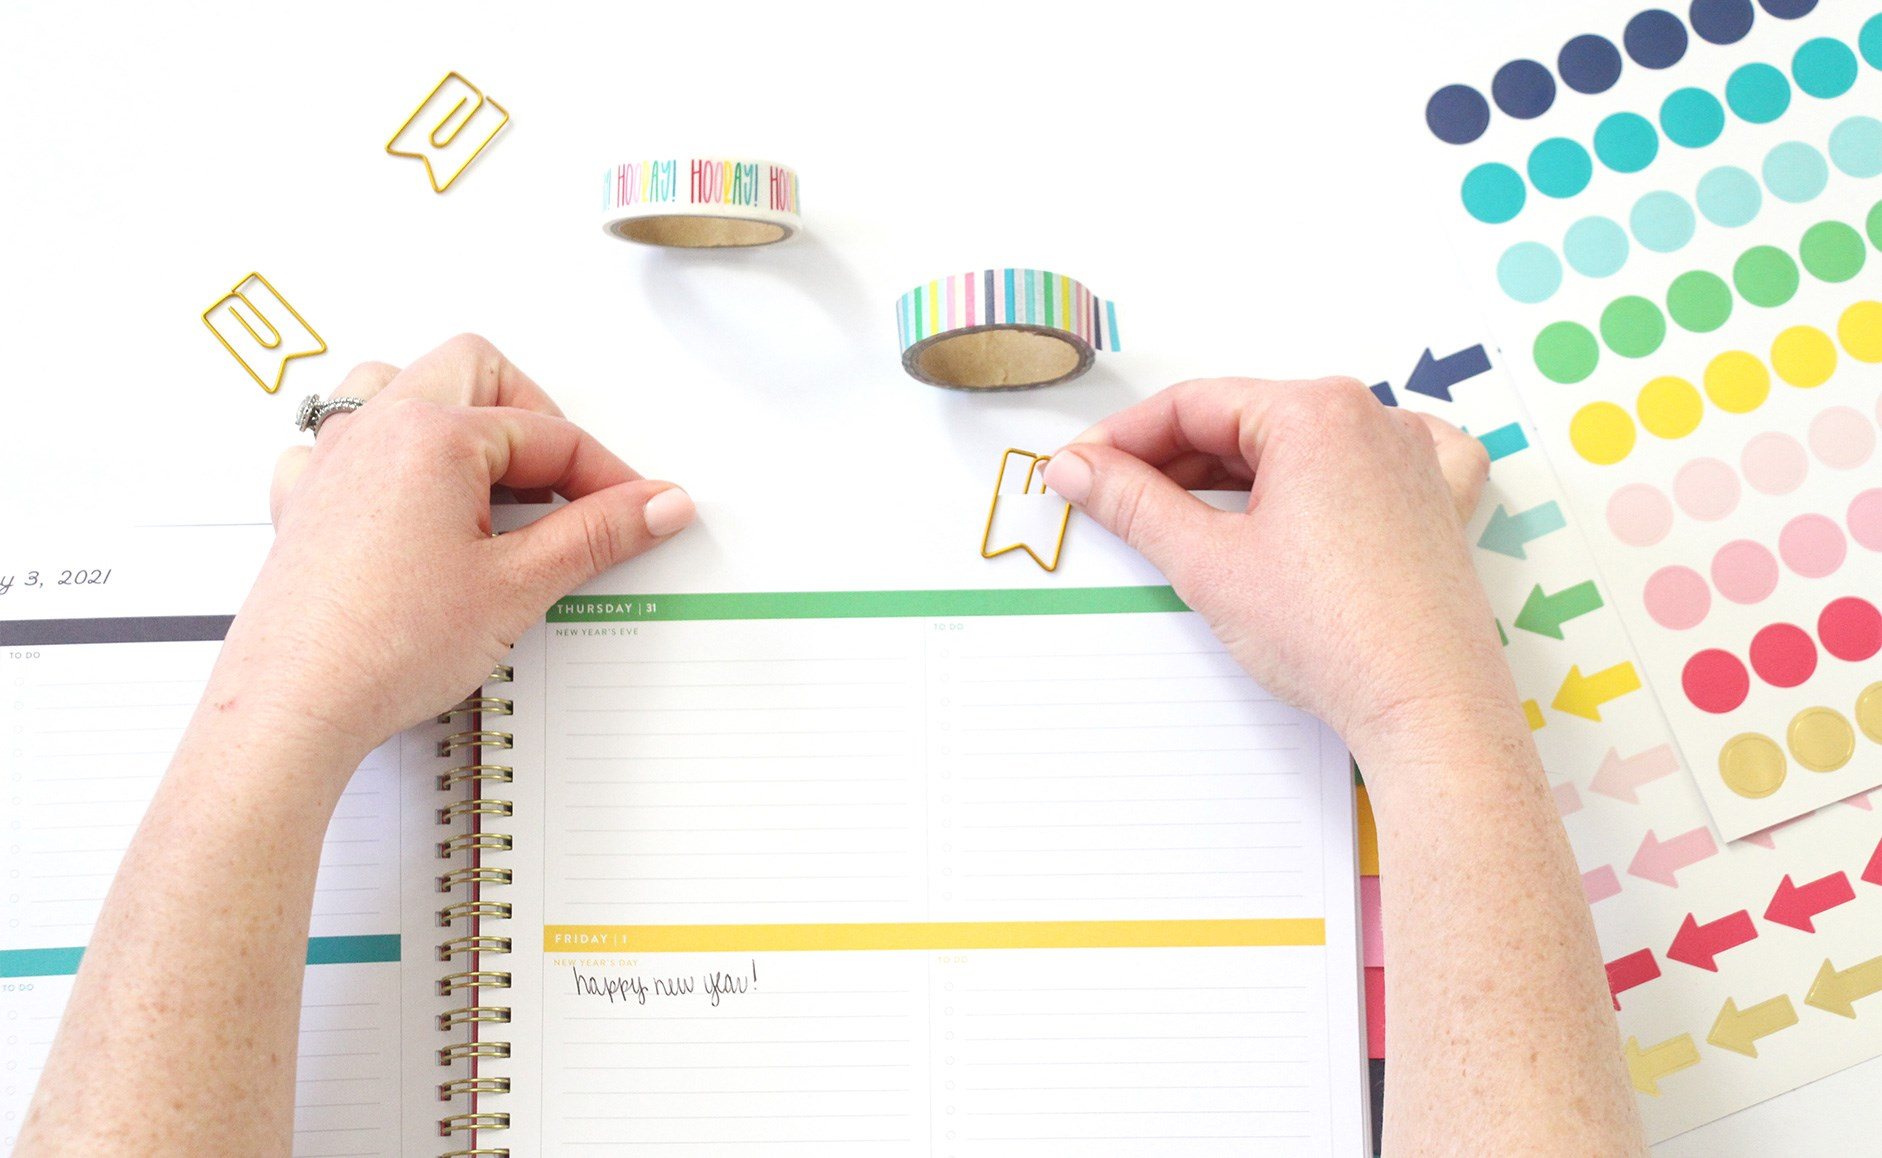 Emily Ley Simplified planner and accessories from AT-A-GLANCE